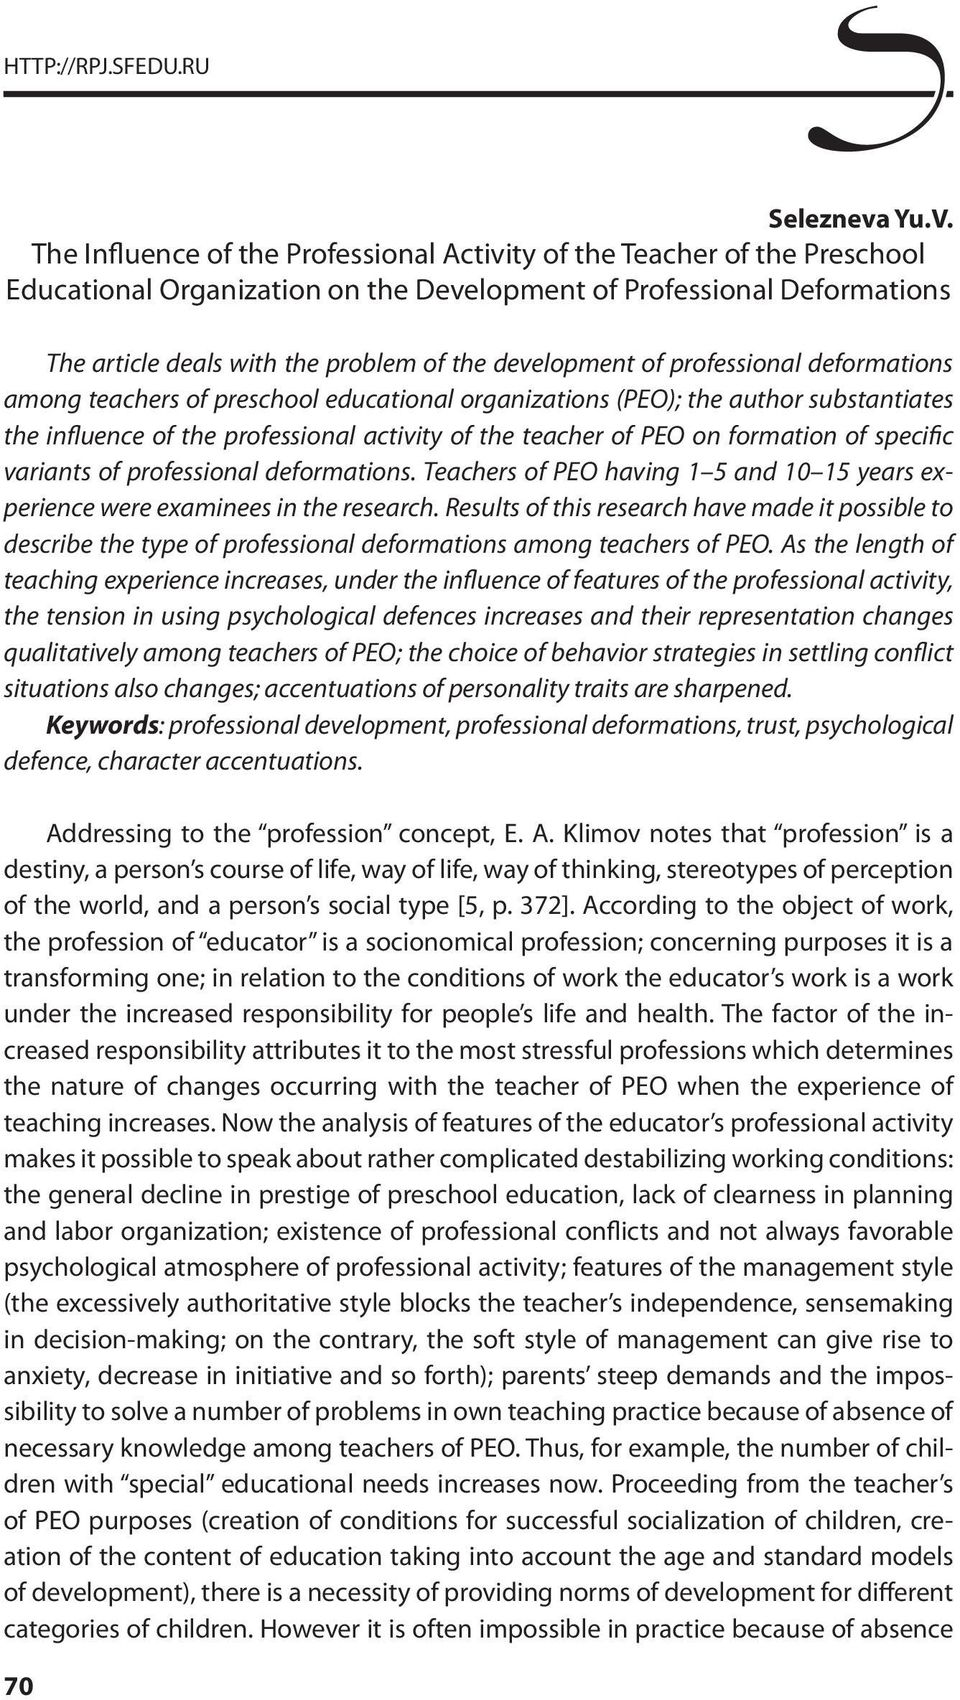 development of professional deformations among teachers of preschool educational organizations (PEO); the author substantiates the influence of the professional activity of the teacher of PEO on